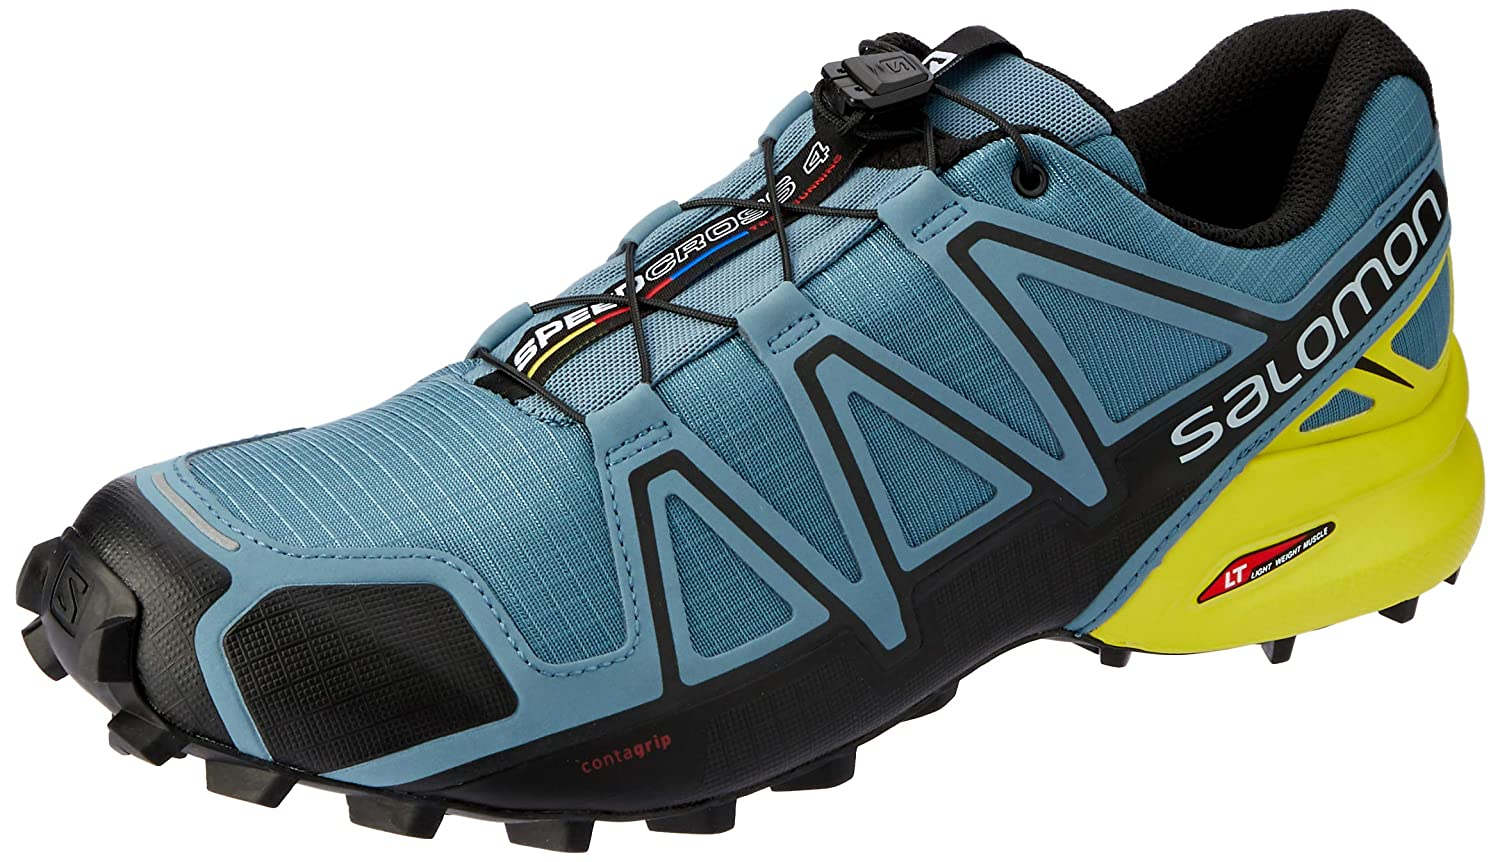 Salomon Men s Speedcross 4 Trail Running Shoes  Amazon.co.uk  Shoes   Bags 166b947ed7